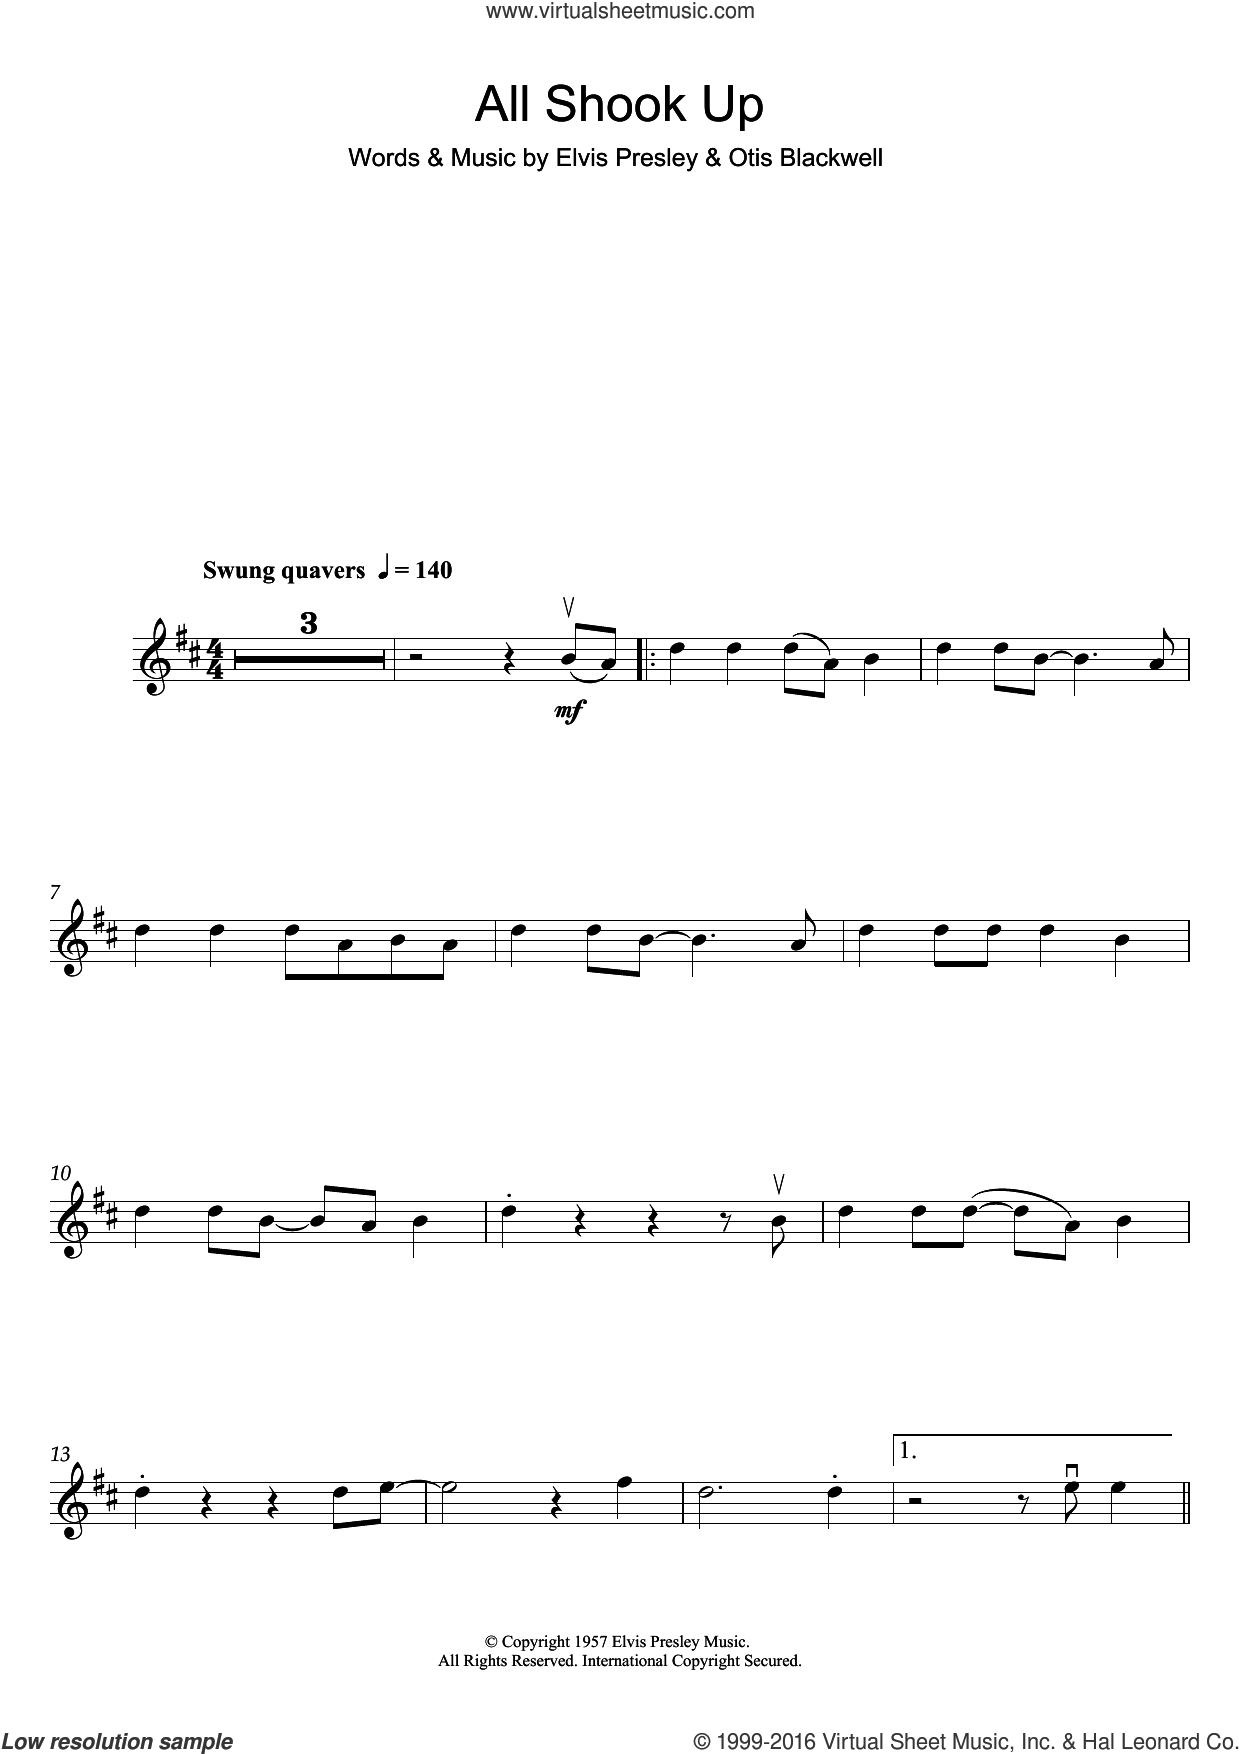 All Shook Up sheet music for violin solo by Elvis Presley and Otis Blackwell, intermediate skill level